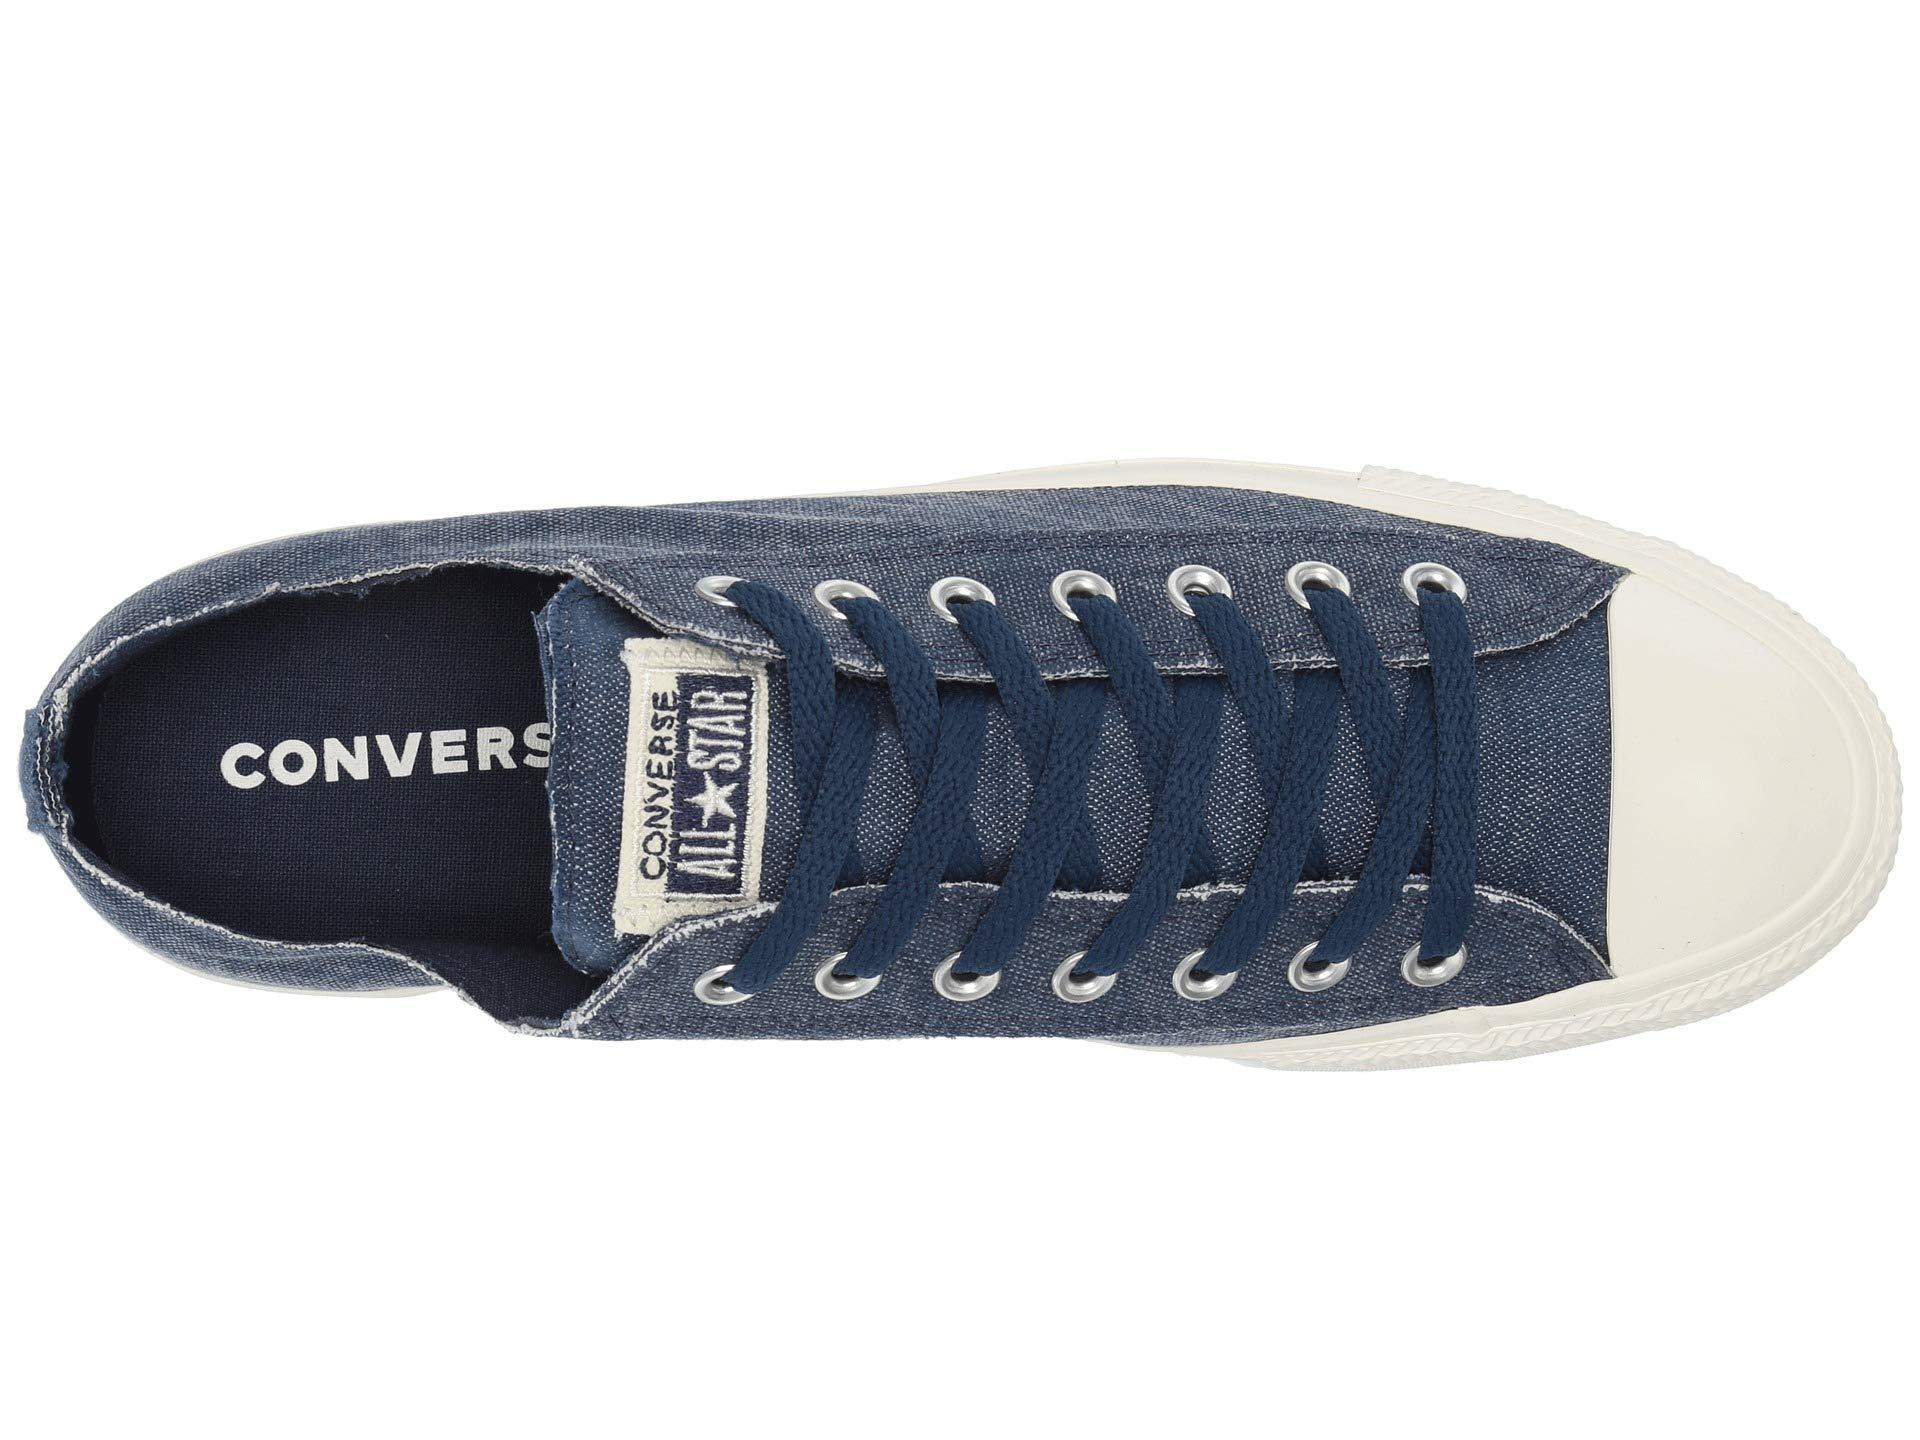 Converse Canvas Chuck Taylor All Star Washed Out Low Top in